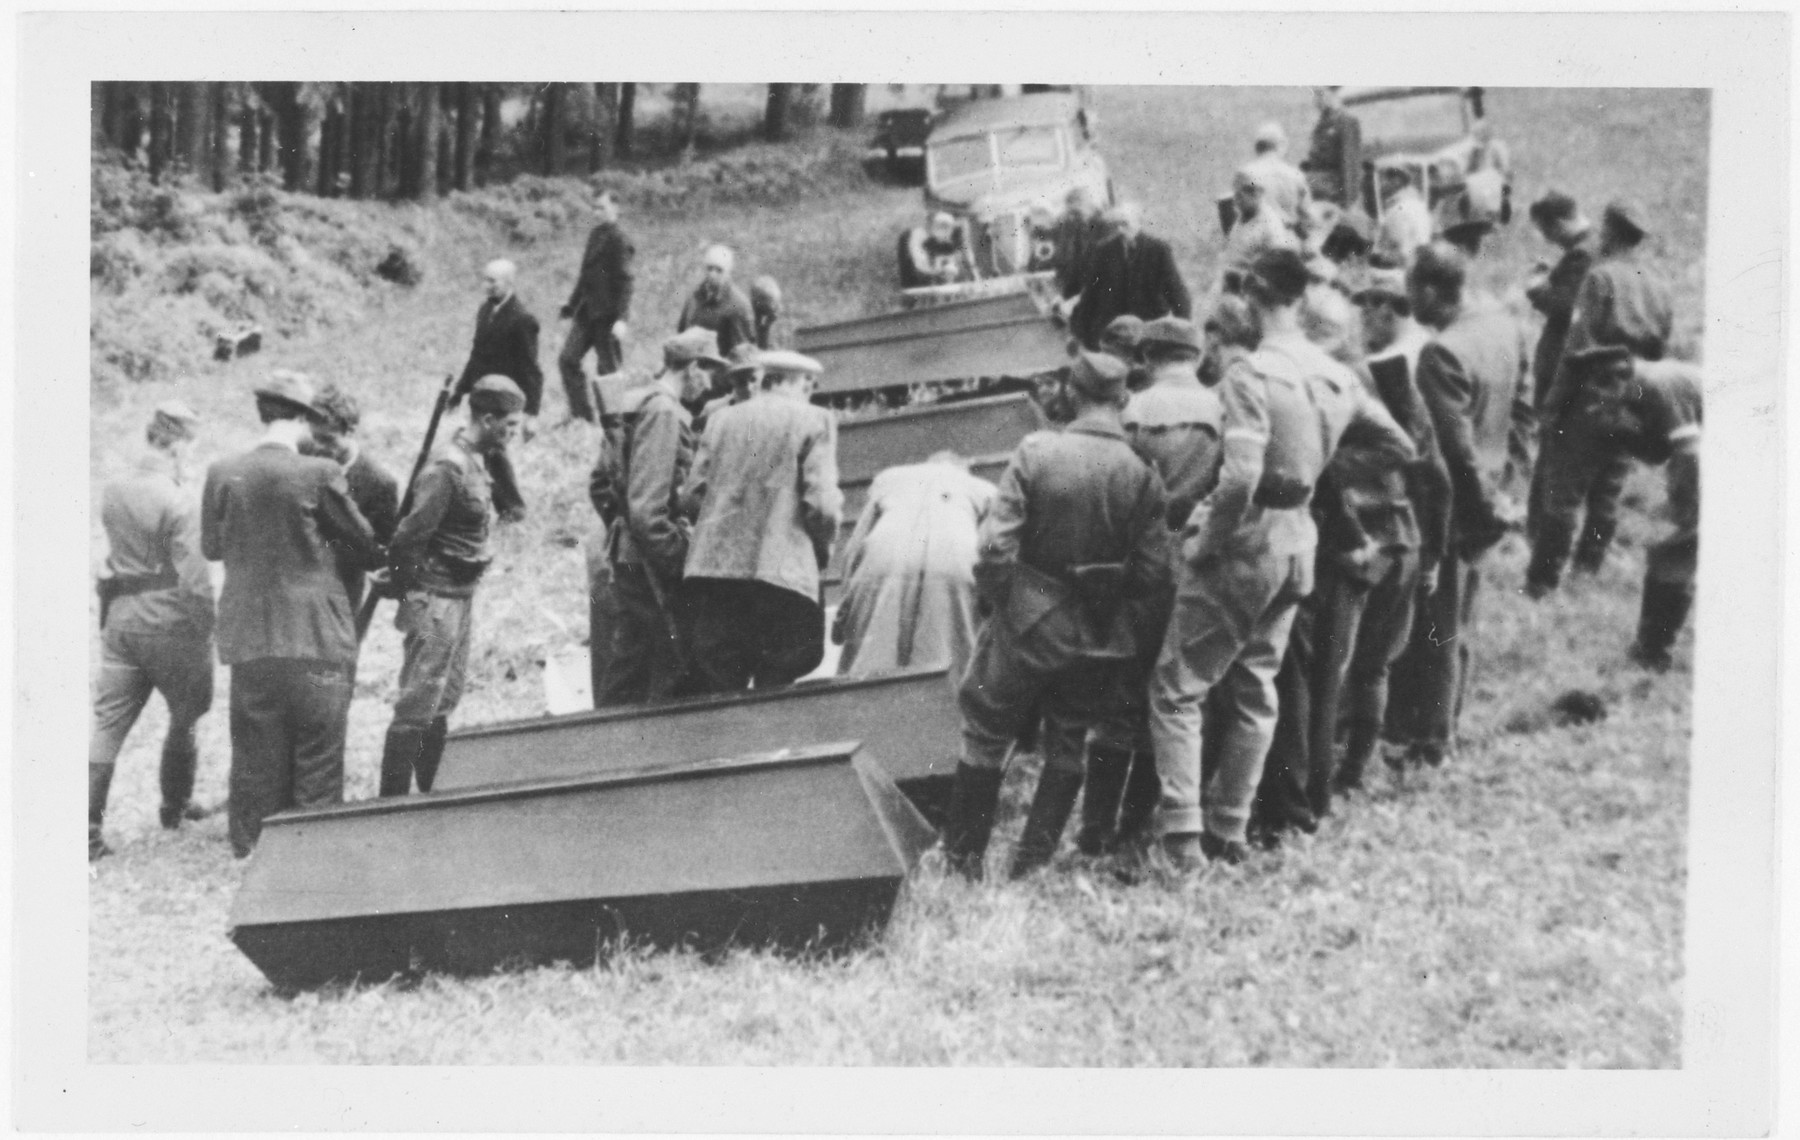 One of a series of photographs depicting the exhumation and reburial of Nazi victims in Pernink, Czechoslovakia.